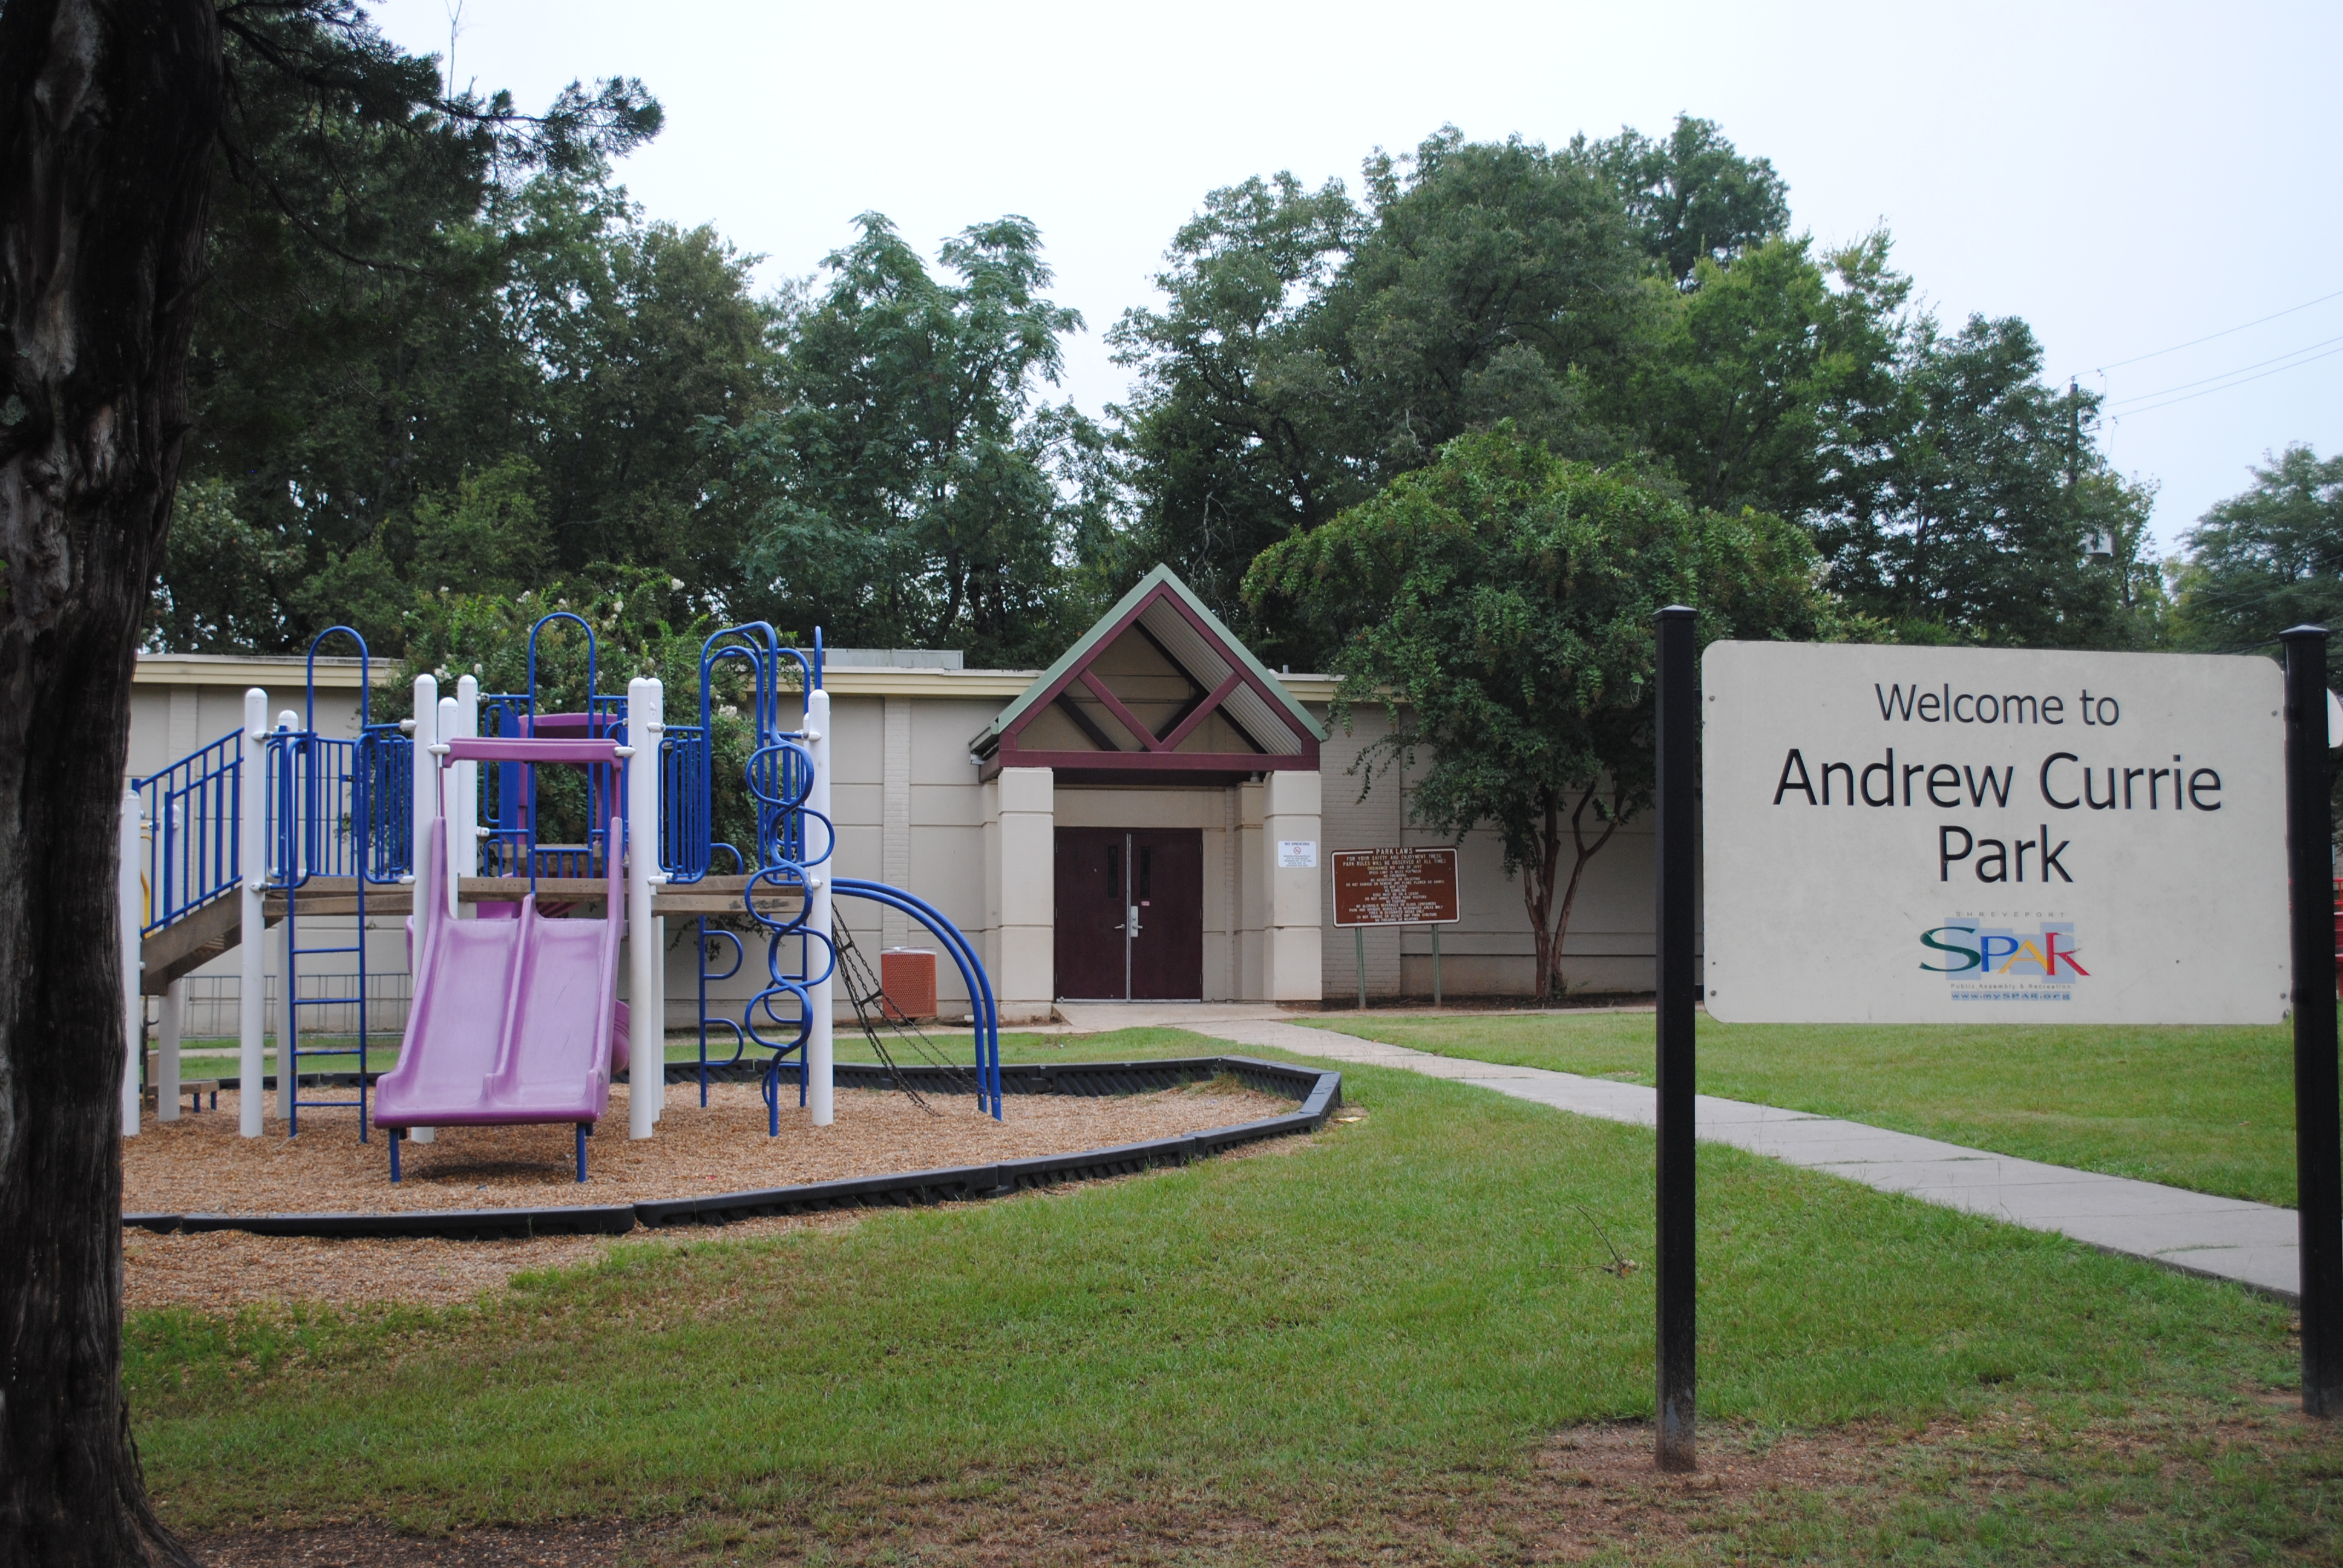 Andrew Currie Community Center